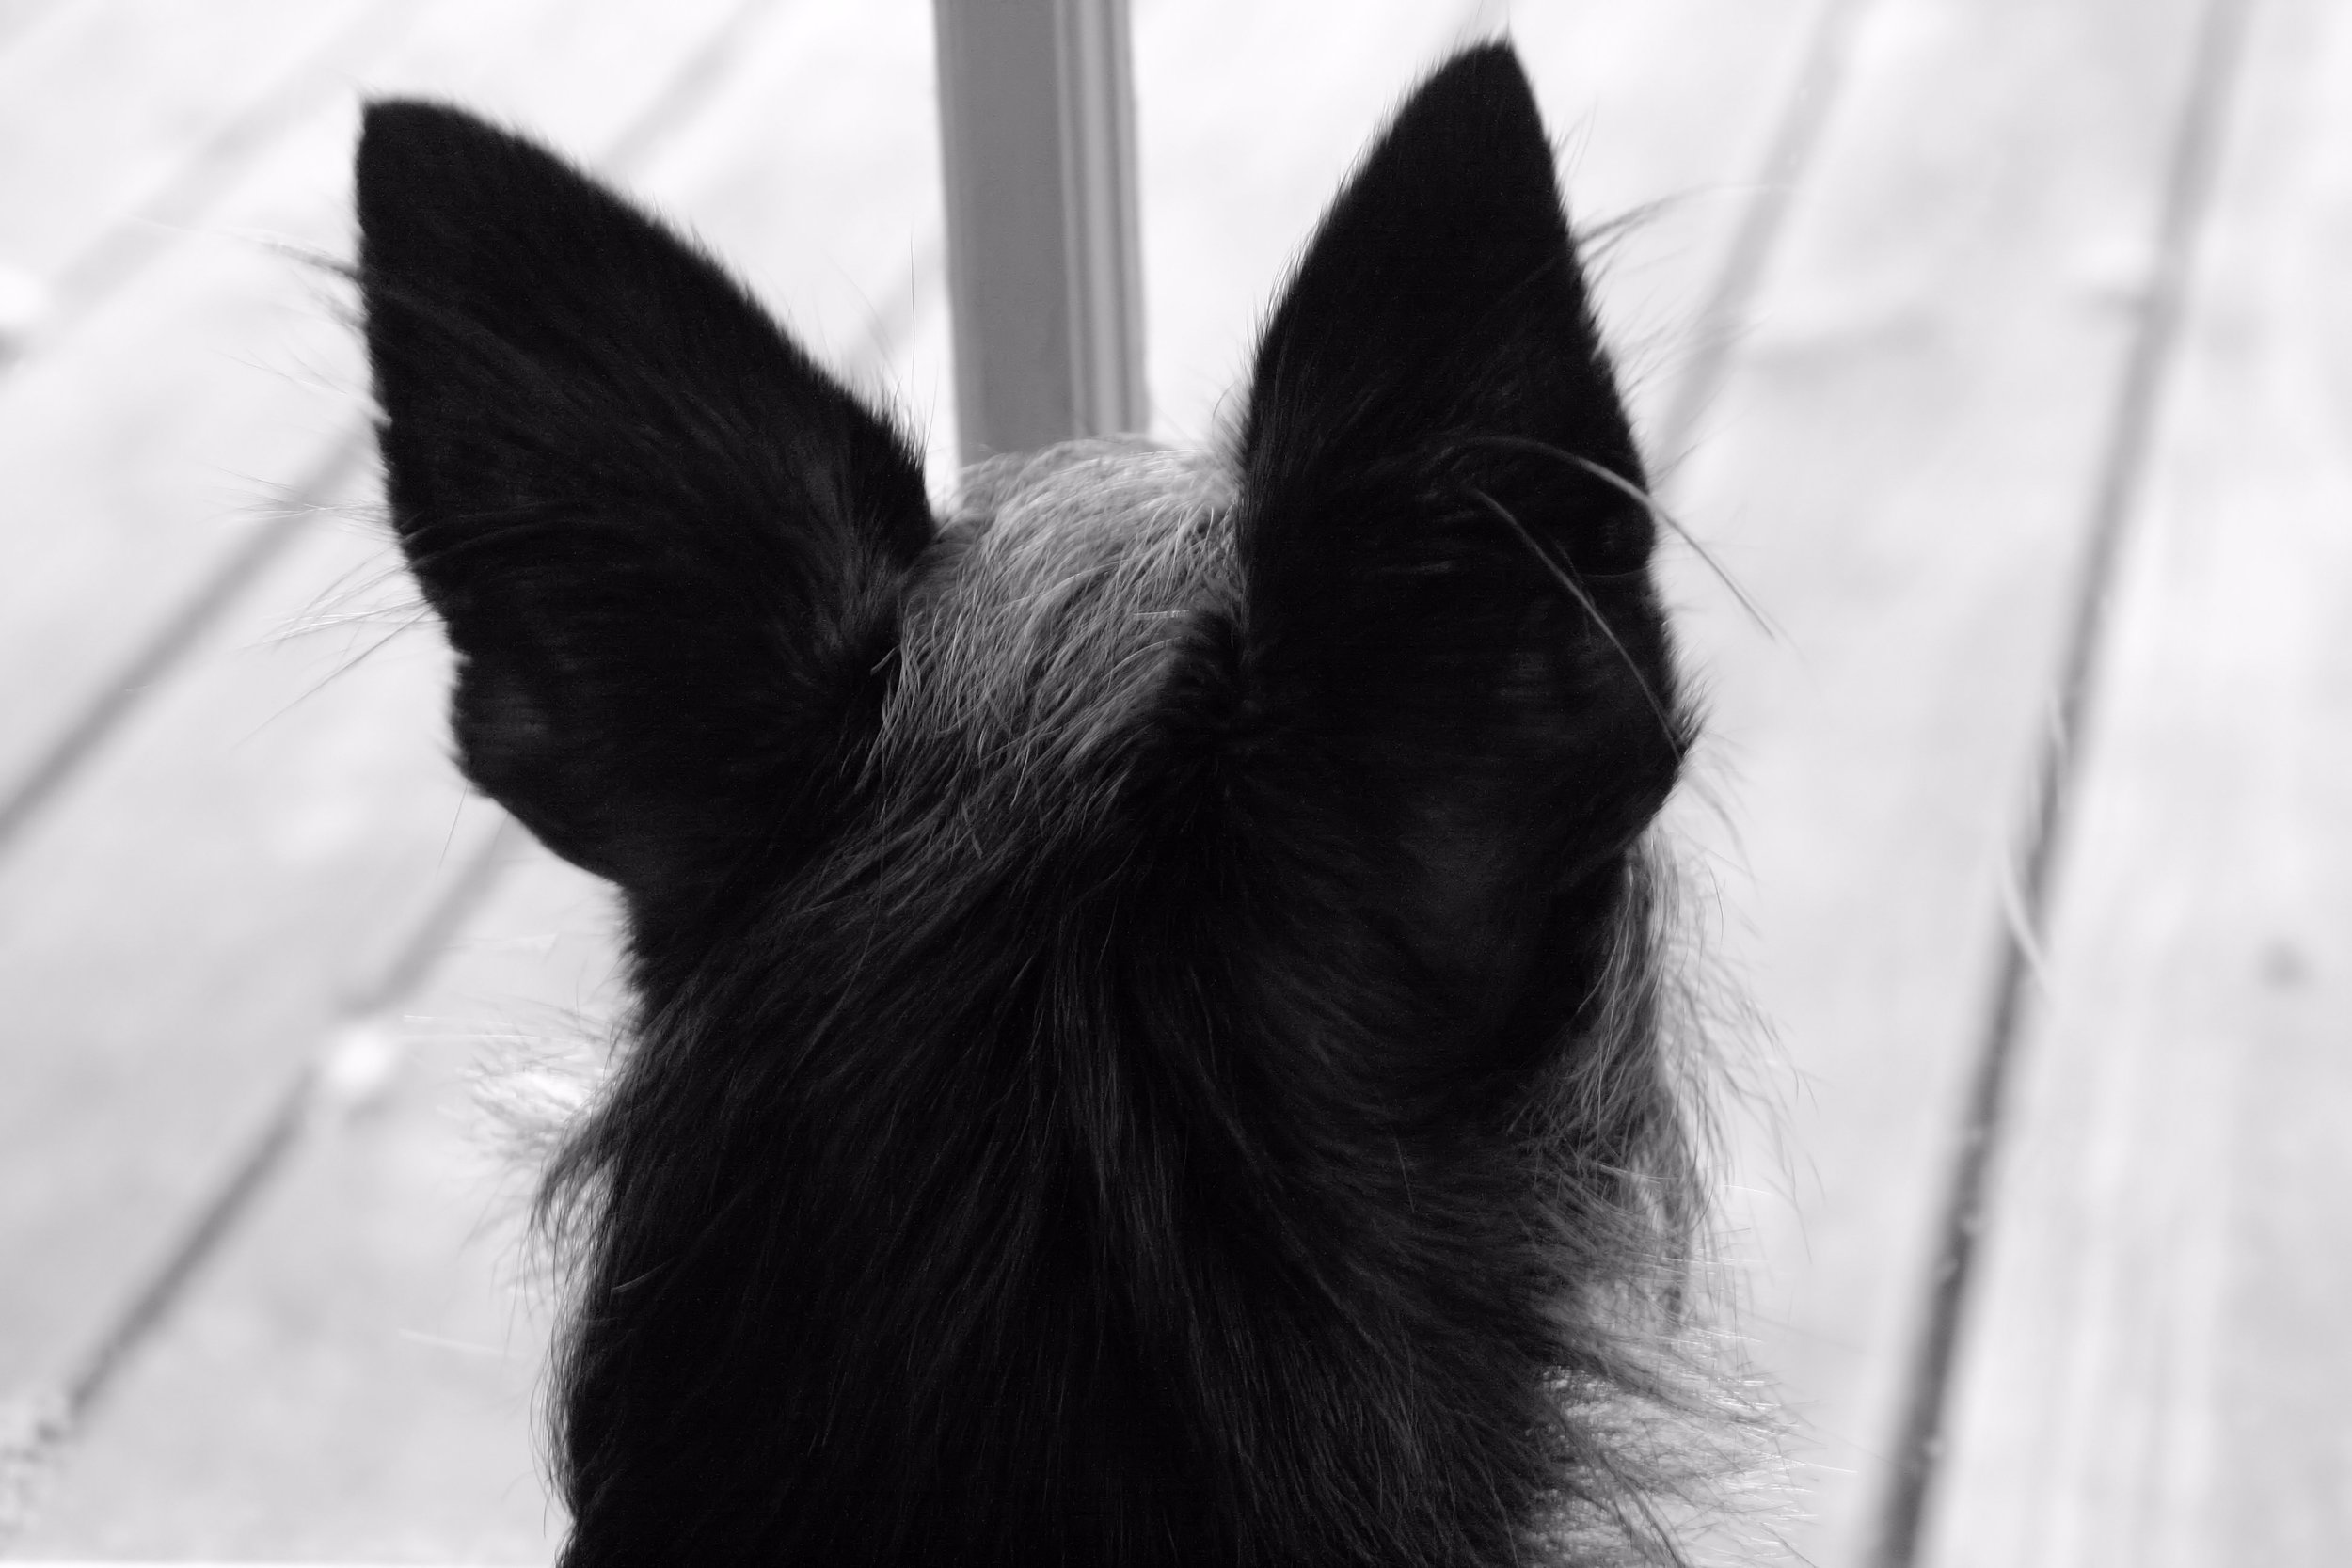 dog, window, photograph, black and white